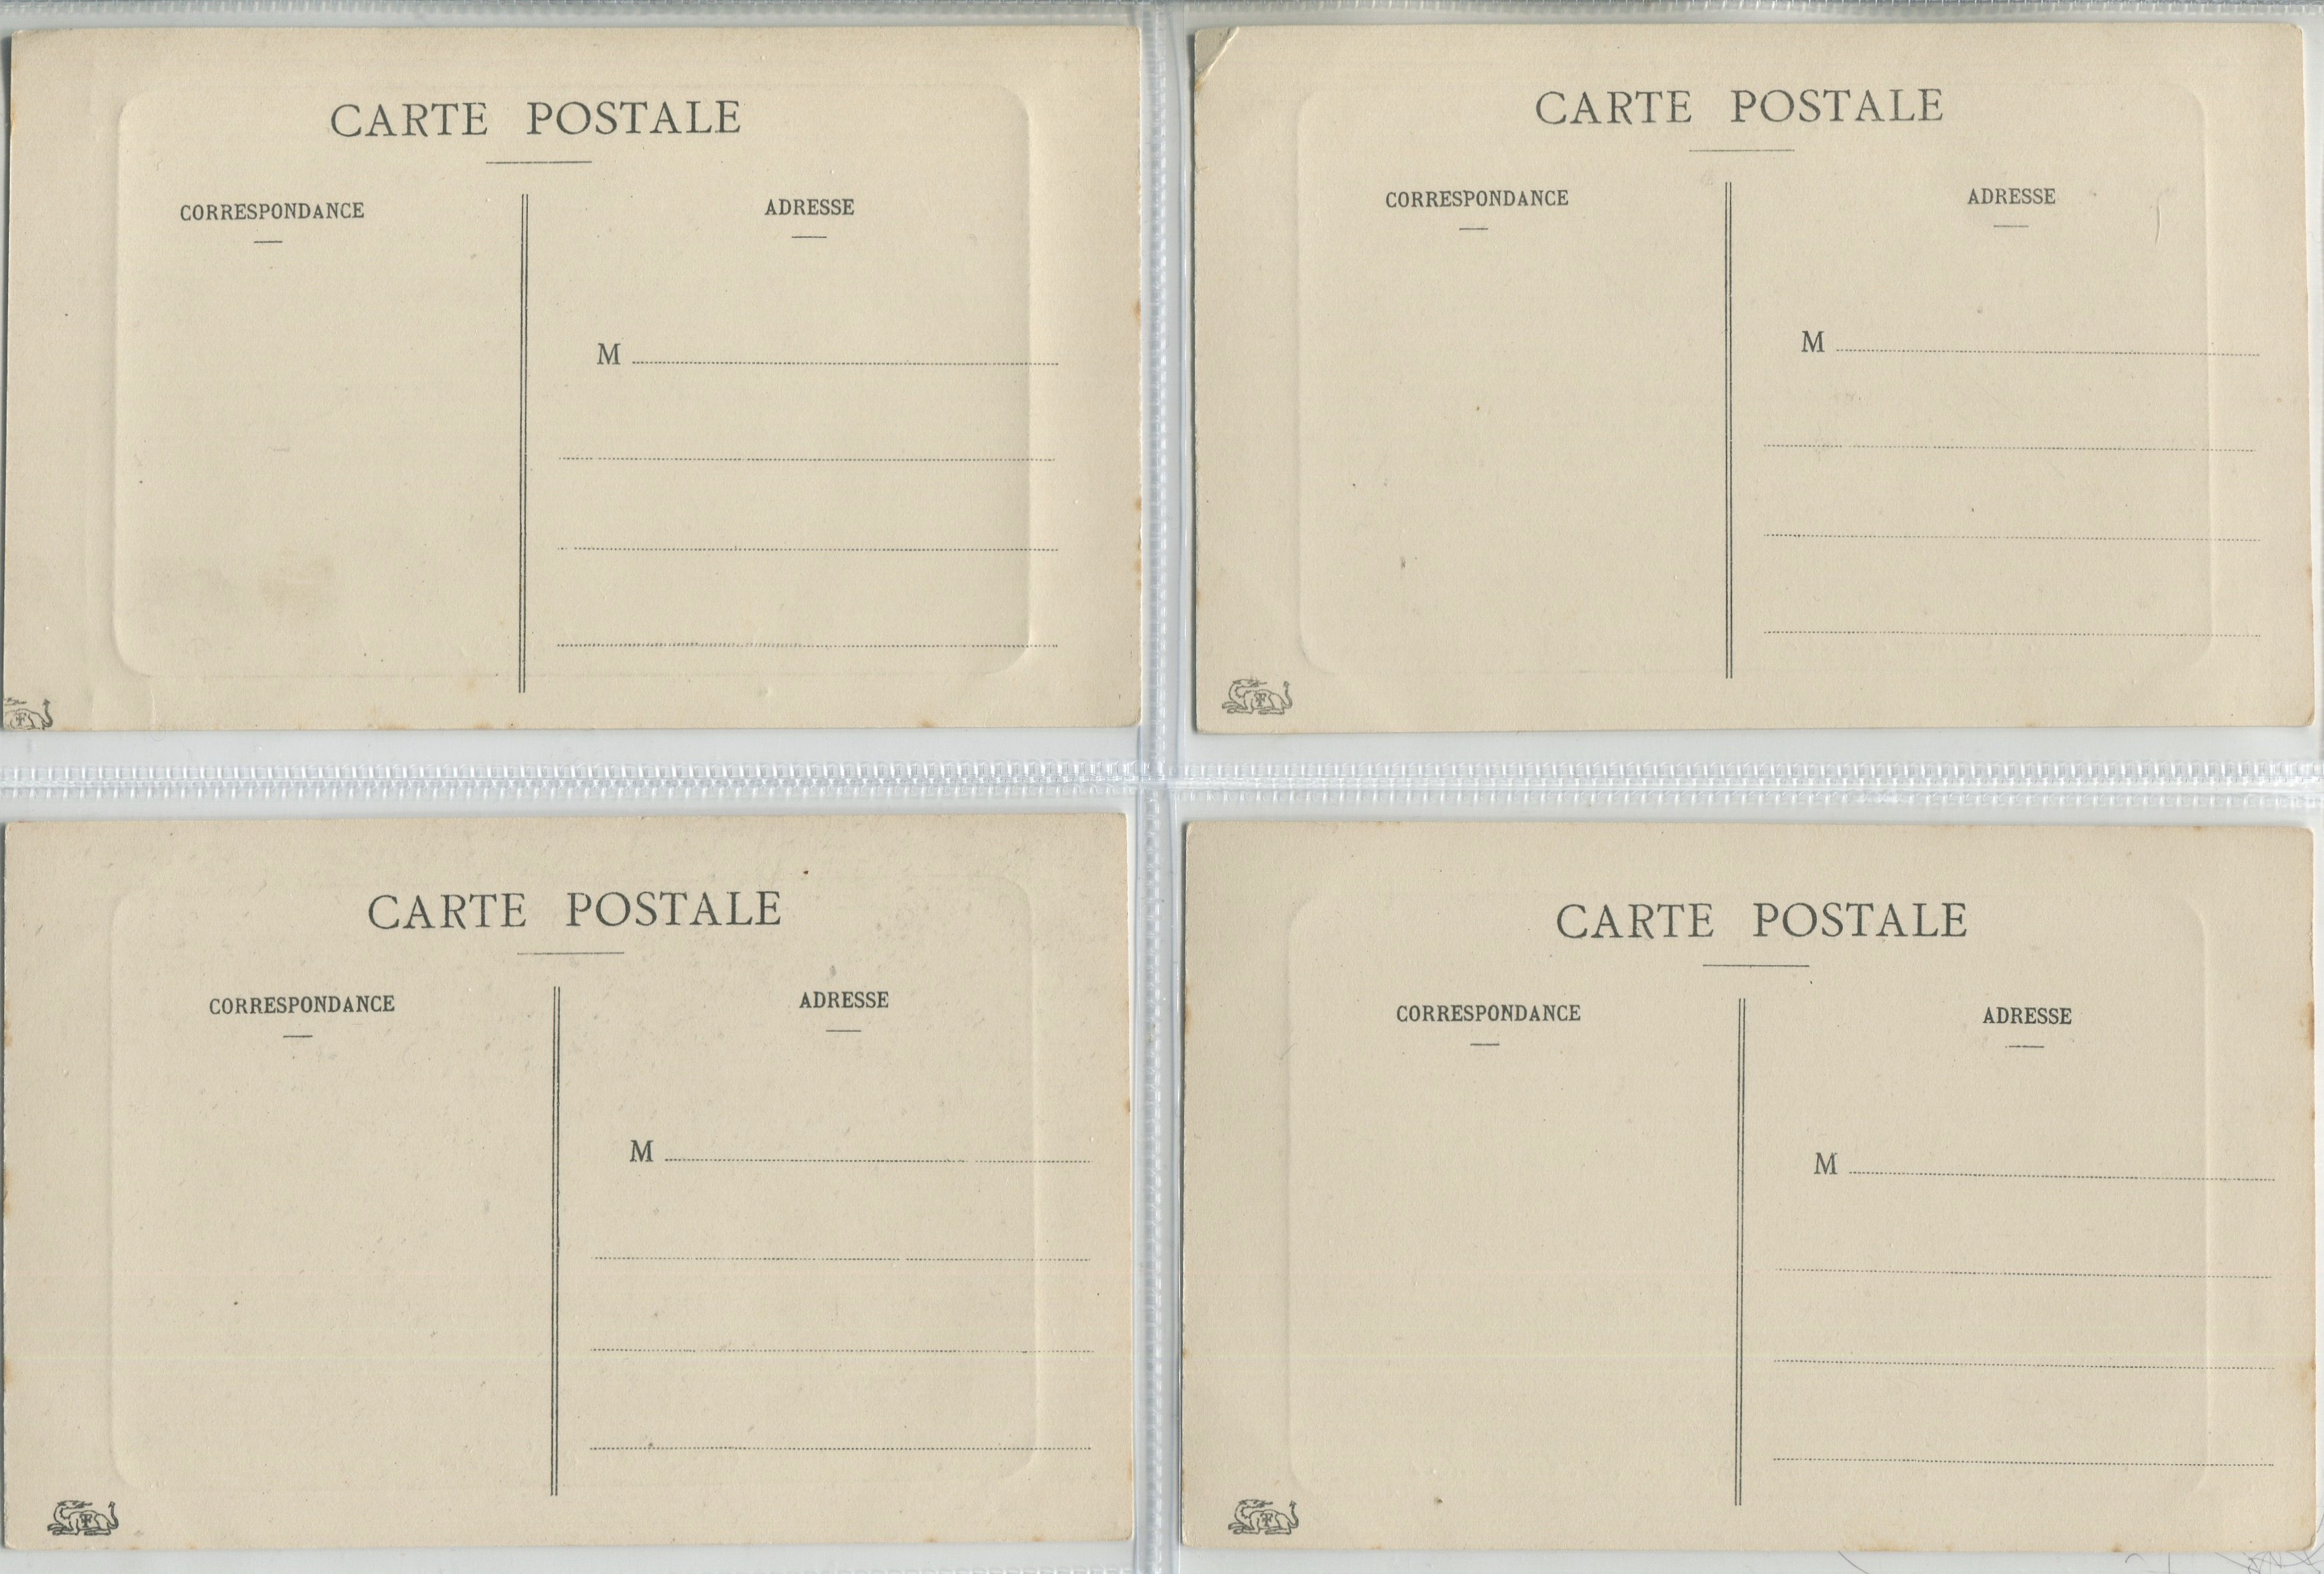 FOUR VINTAGE POSTCARDS OF PALAIS DE FONTAINEBLEAU - Image 2 of 2